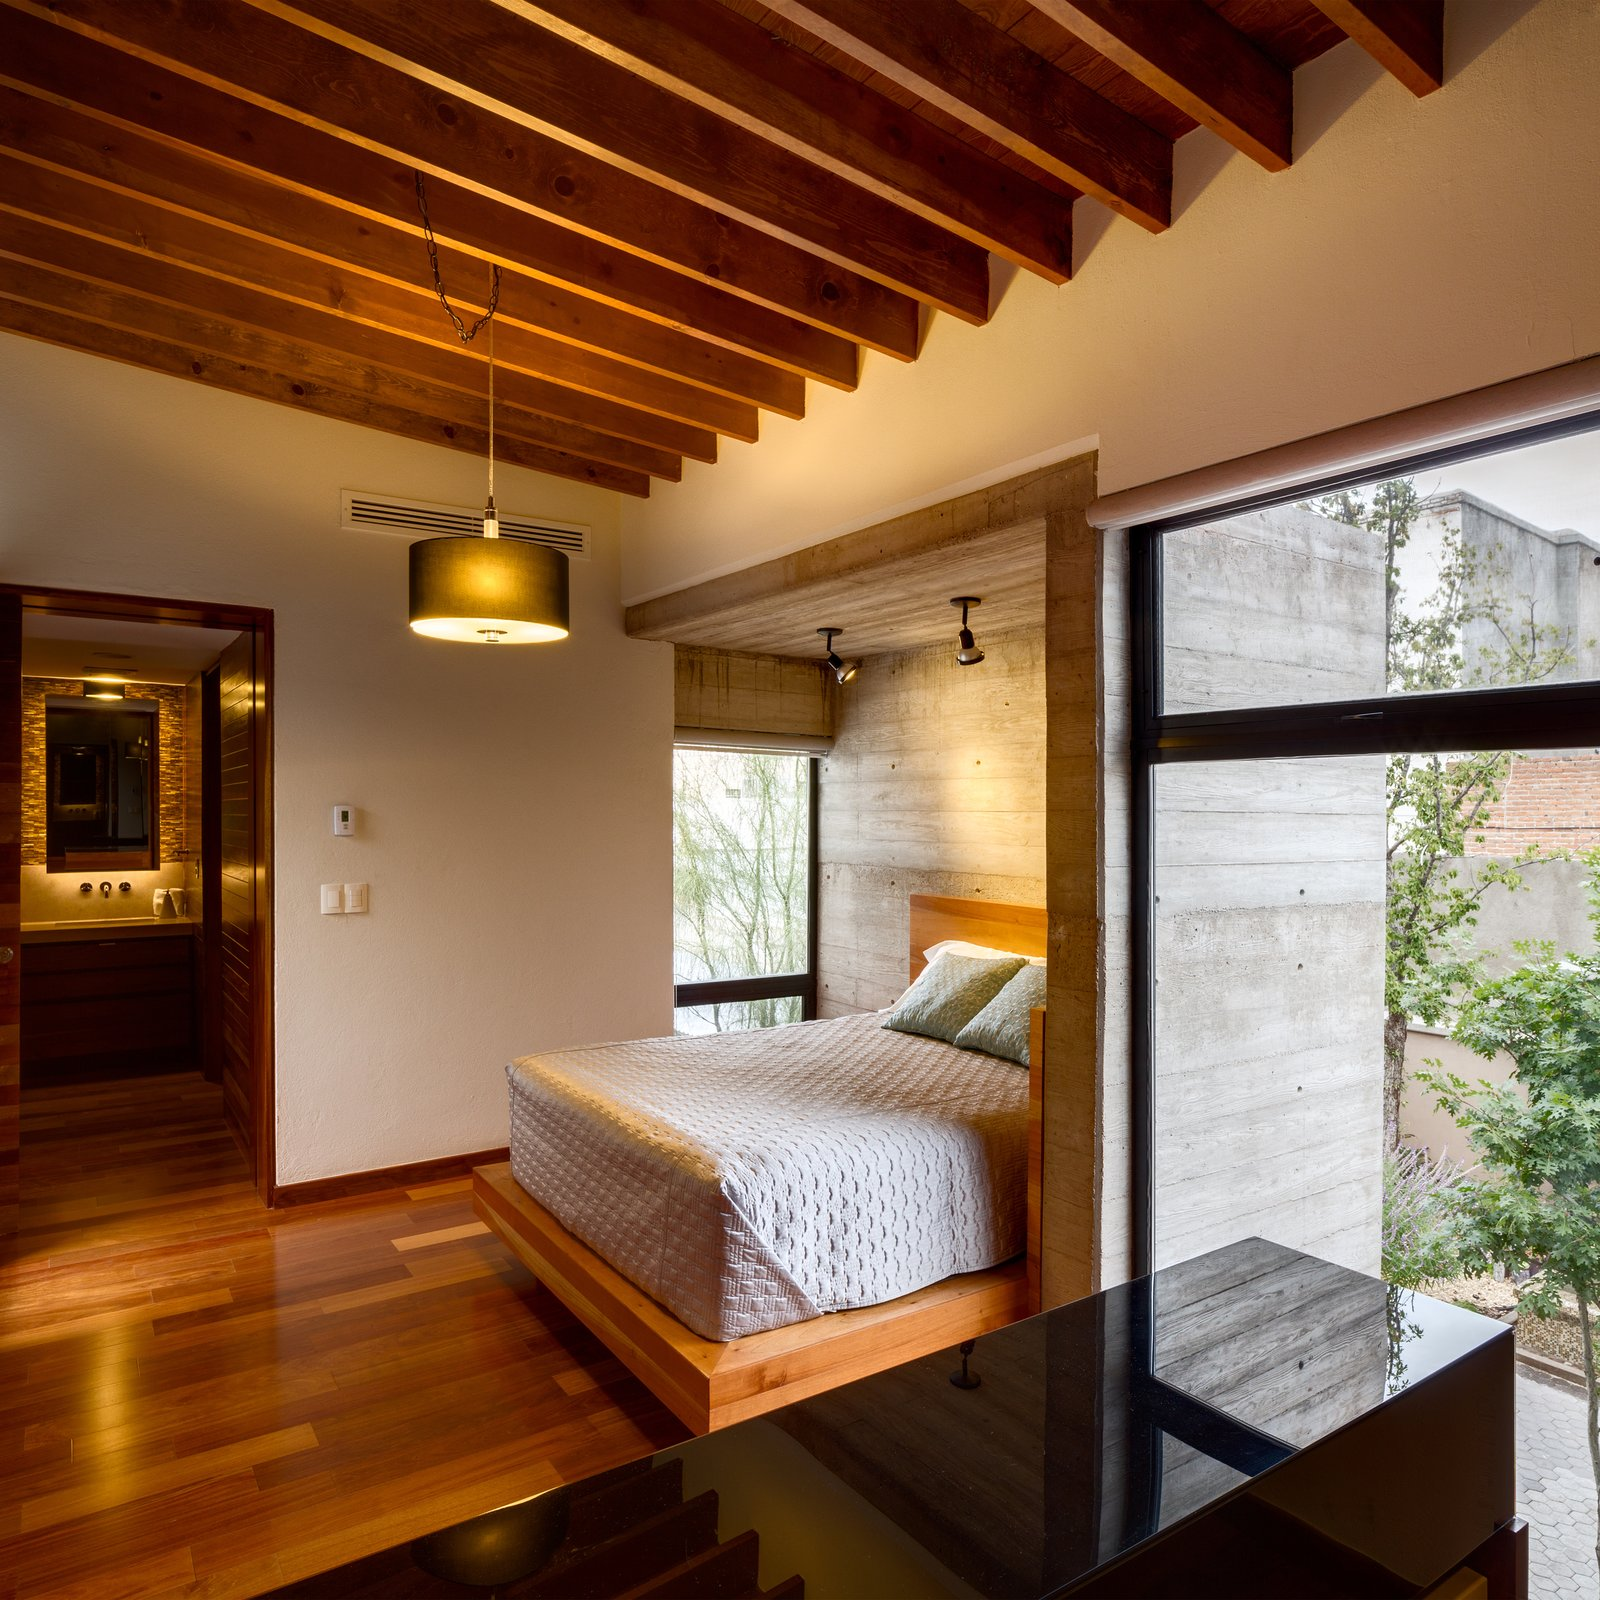 All of the bedrooms, including the master, are incorporated into the program of the new house. The bedrooms are positioned on opposite sides of the second floor; one faces the street and one faces the backyard. The master bedroom bed is tucked into a concrete cube within the room. Hybrid Home by Sarah Akkoush